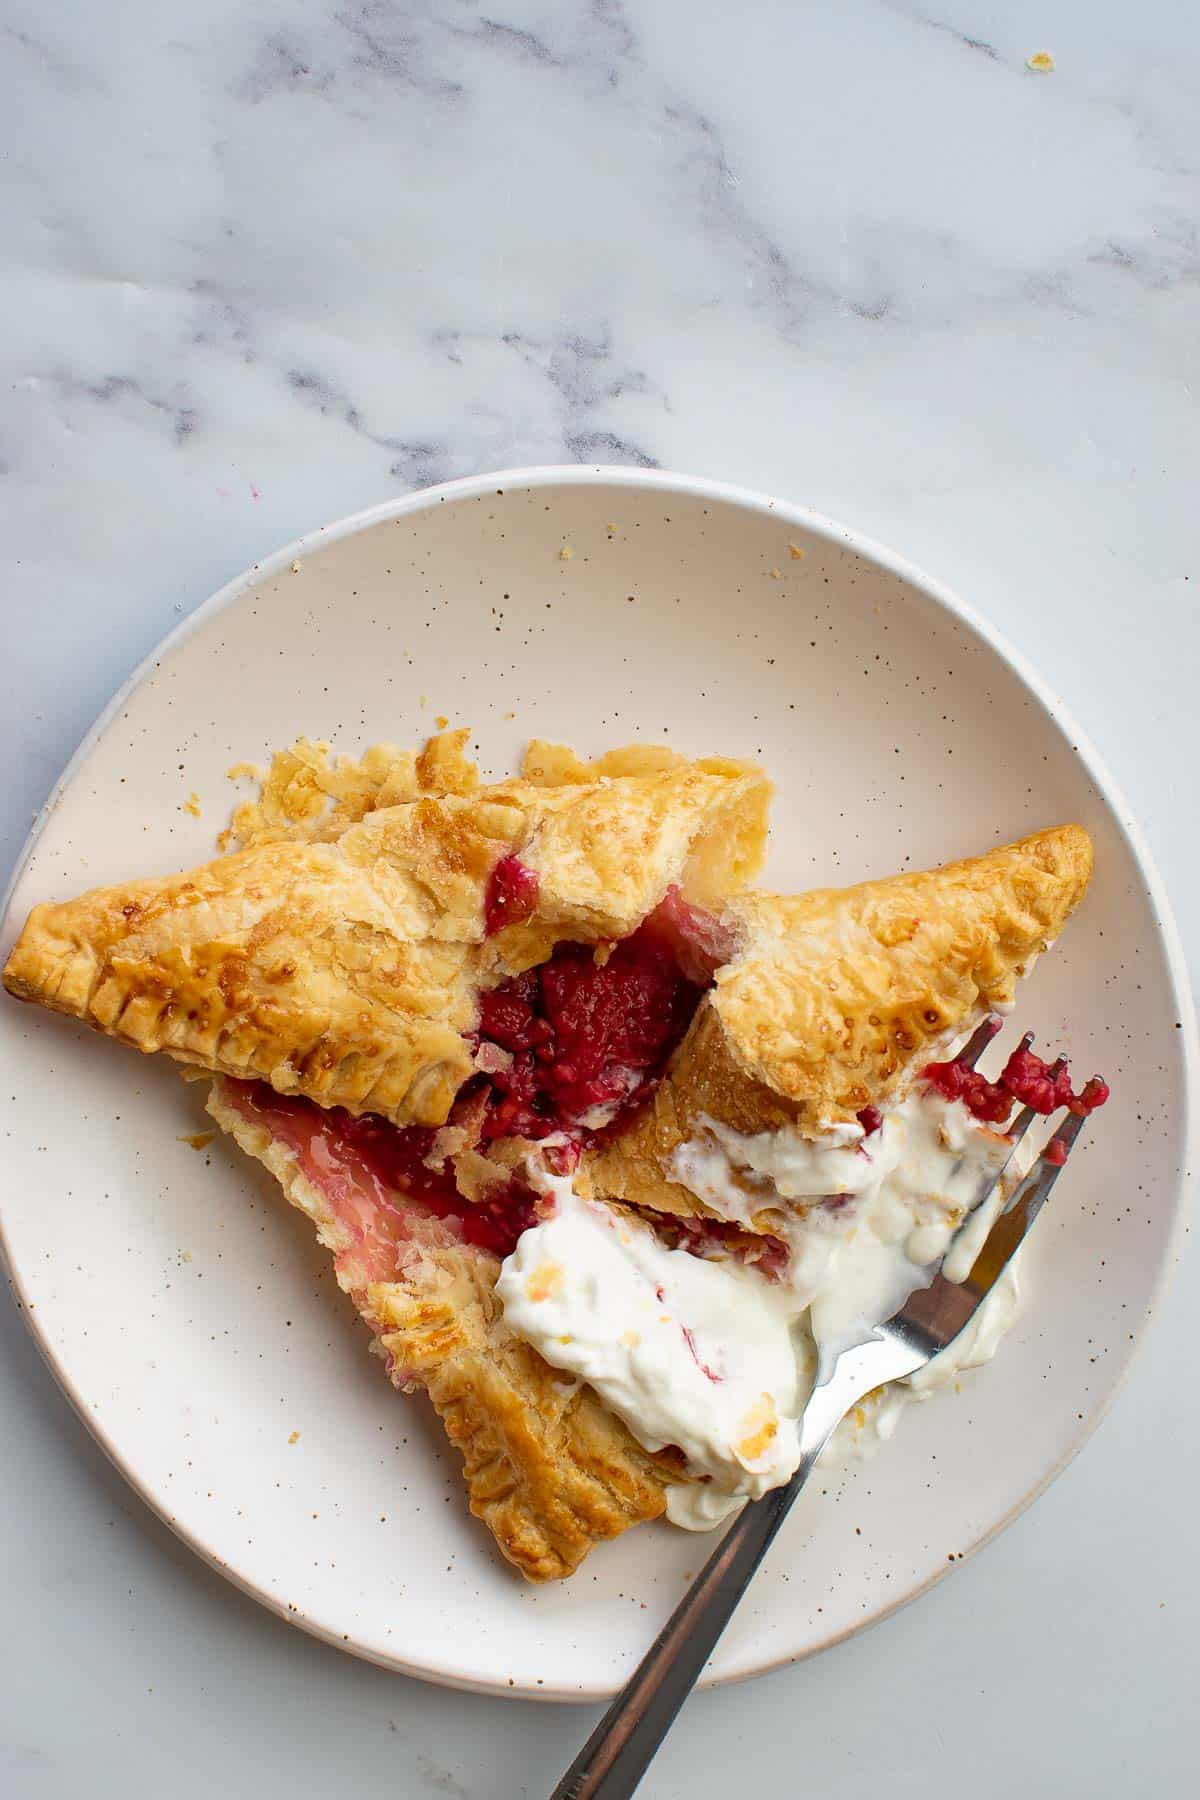 A raspberry pastry with cream that's been opened with a fork.